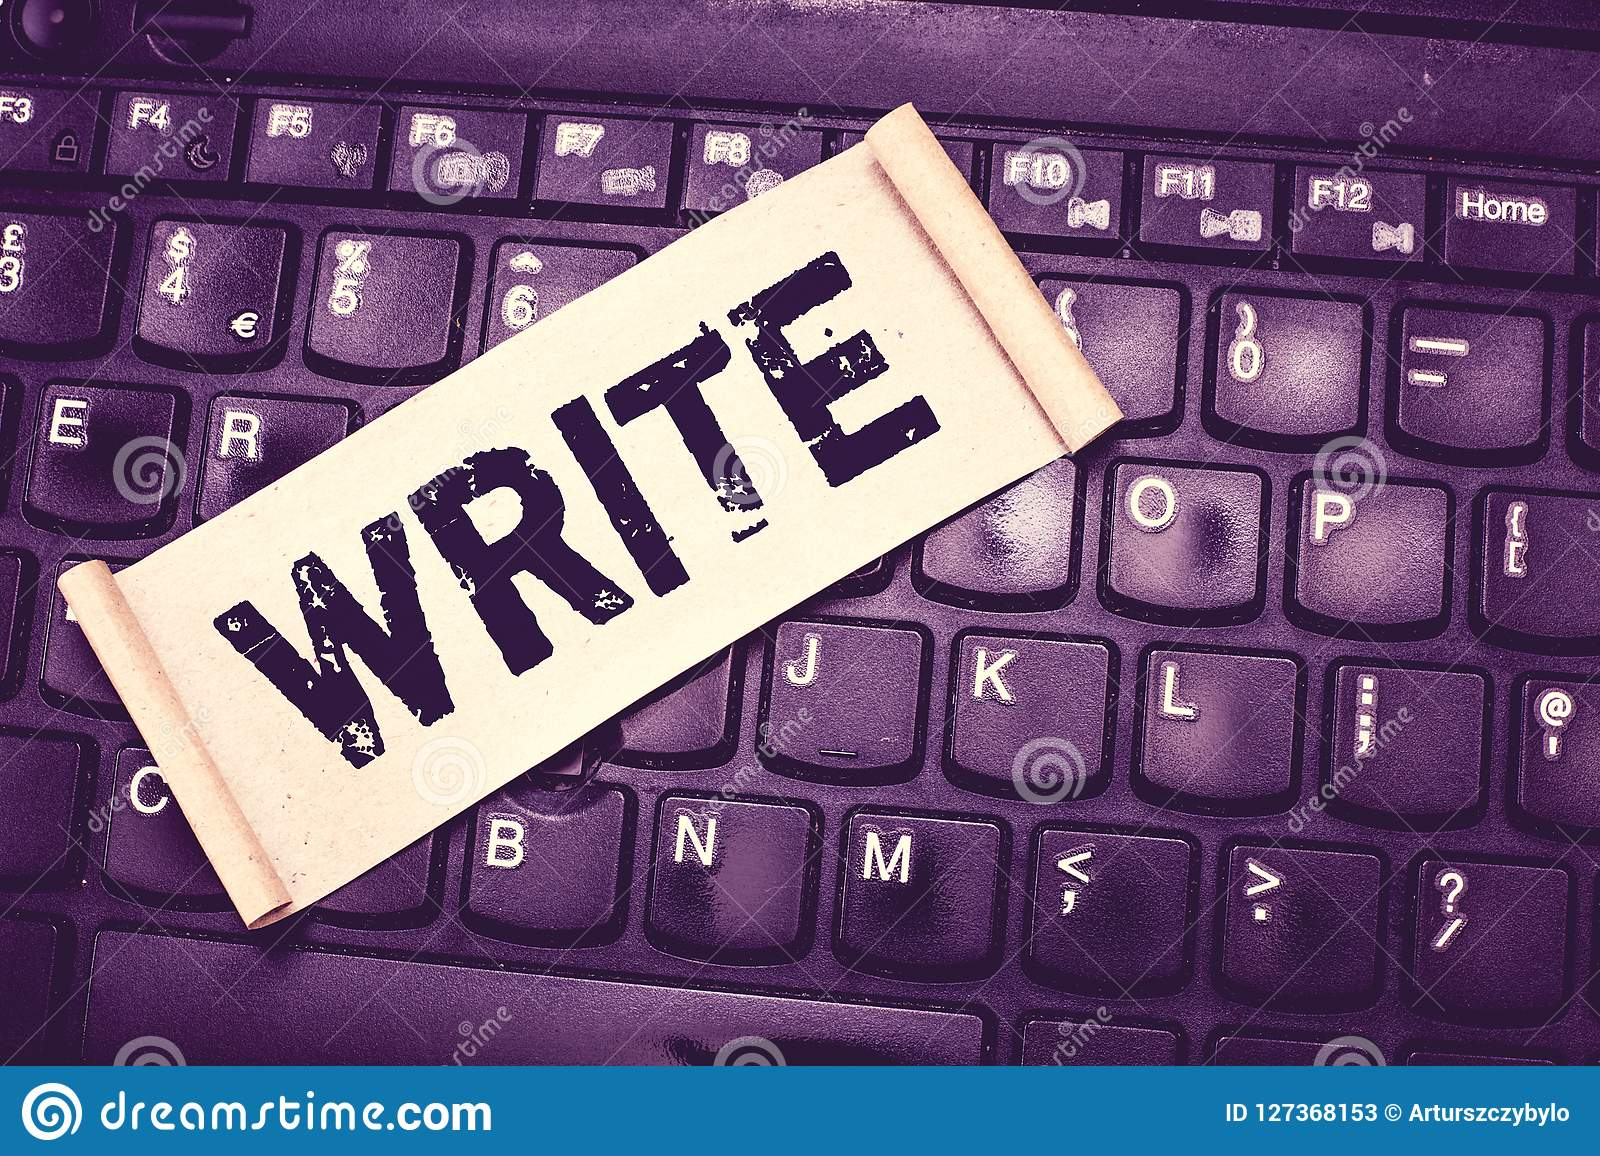 Top academic essay ghostwriting service for mba